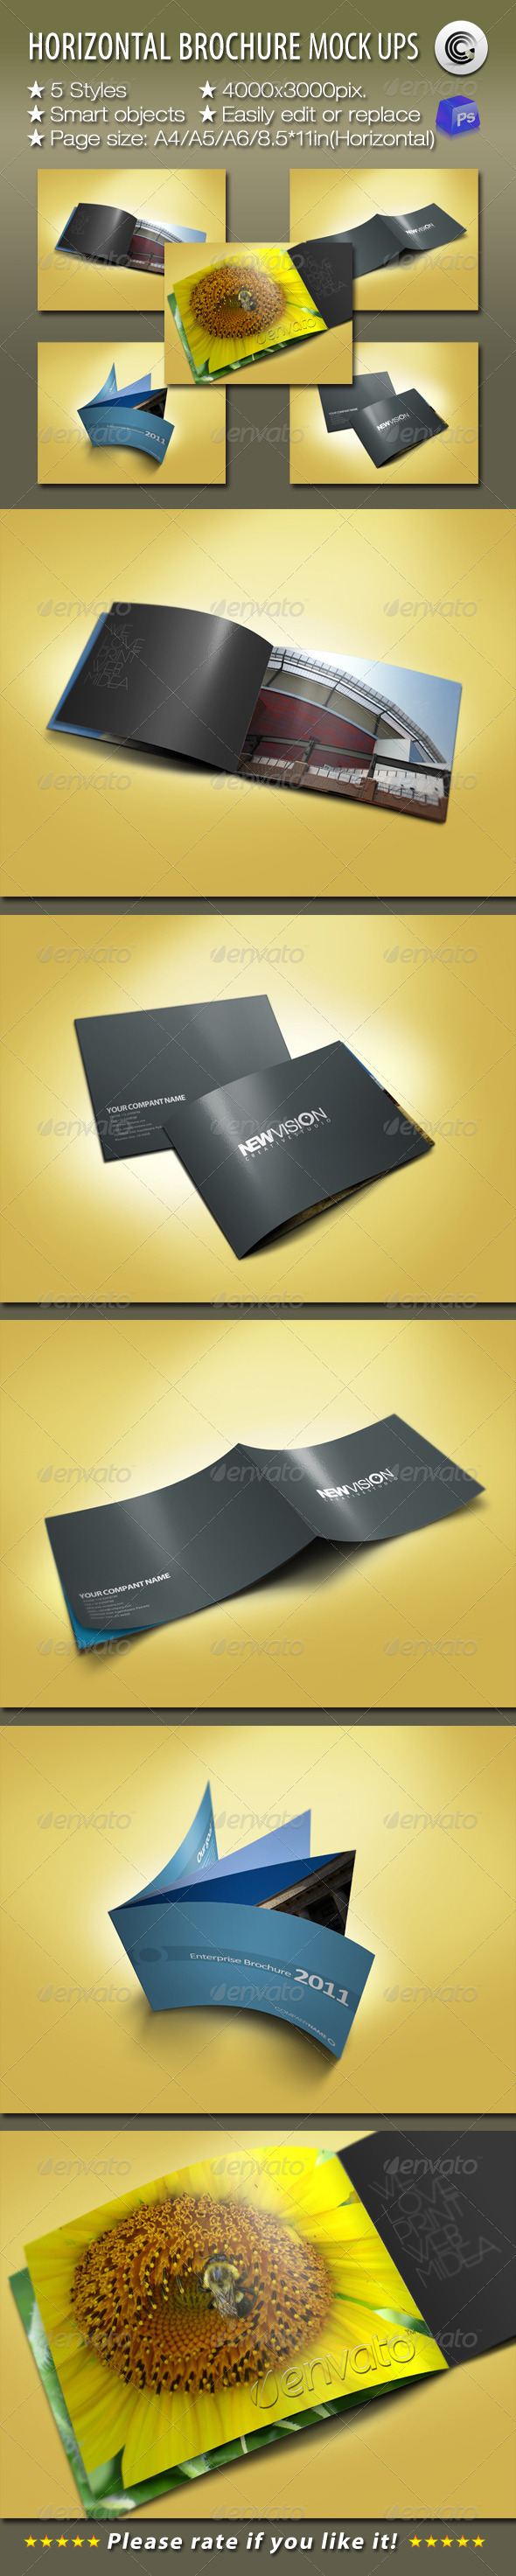 Graphic River Horizontal Brochures Preview Mock-ups Graphics -  Product Mock-Ups  Print 758337